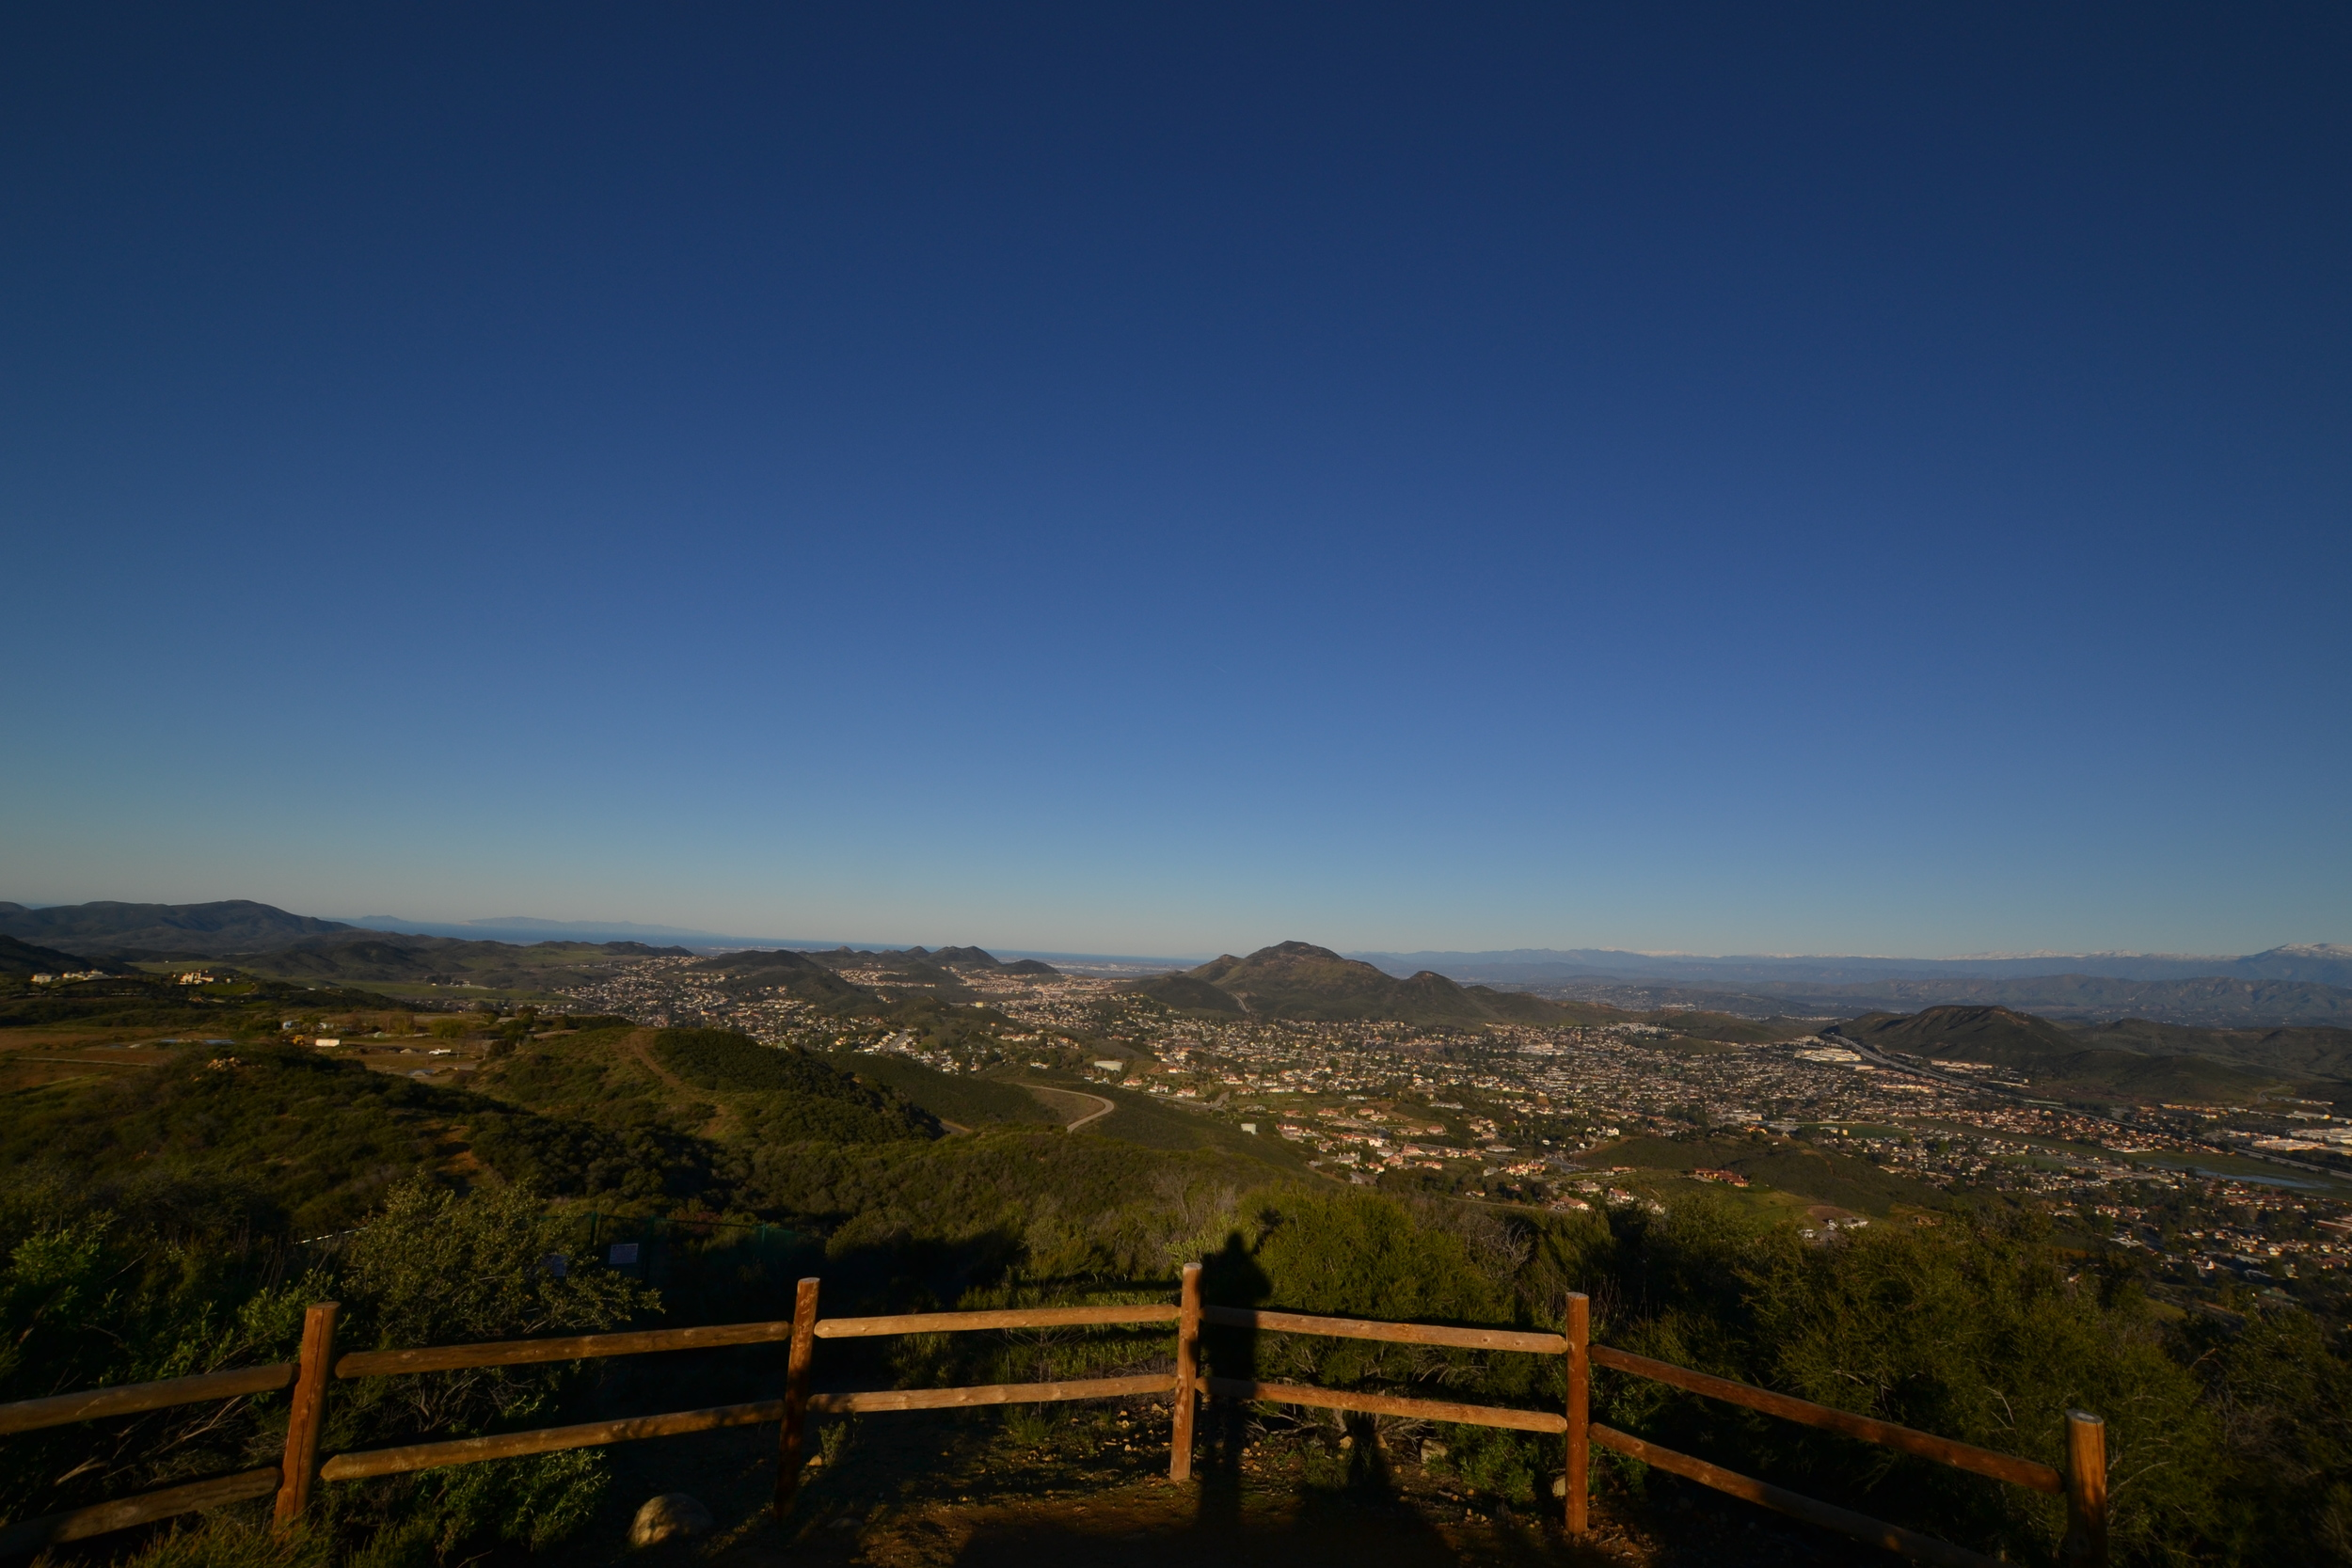 View of Newbury Park from the Conejo Loop Trail, Thousand Oaks